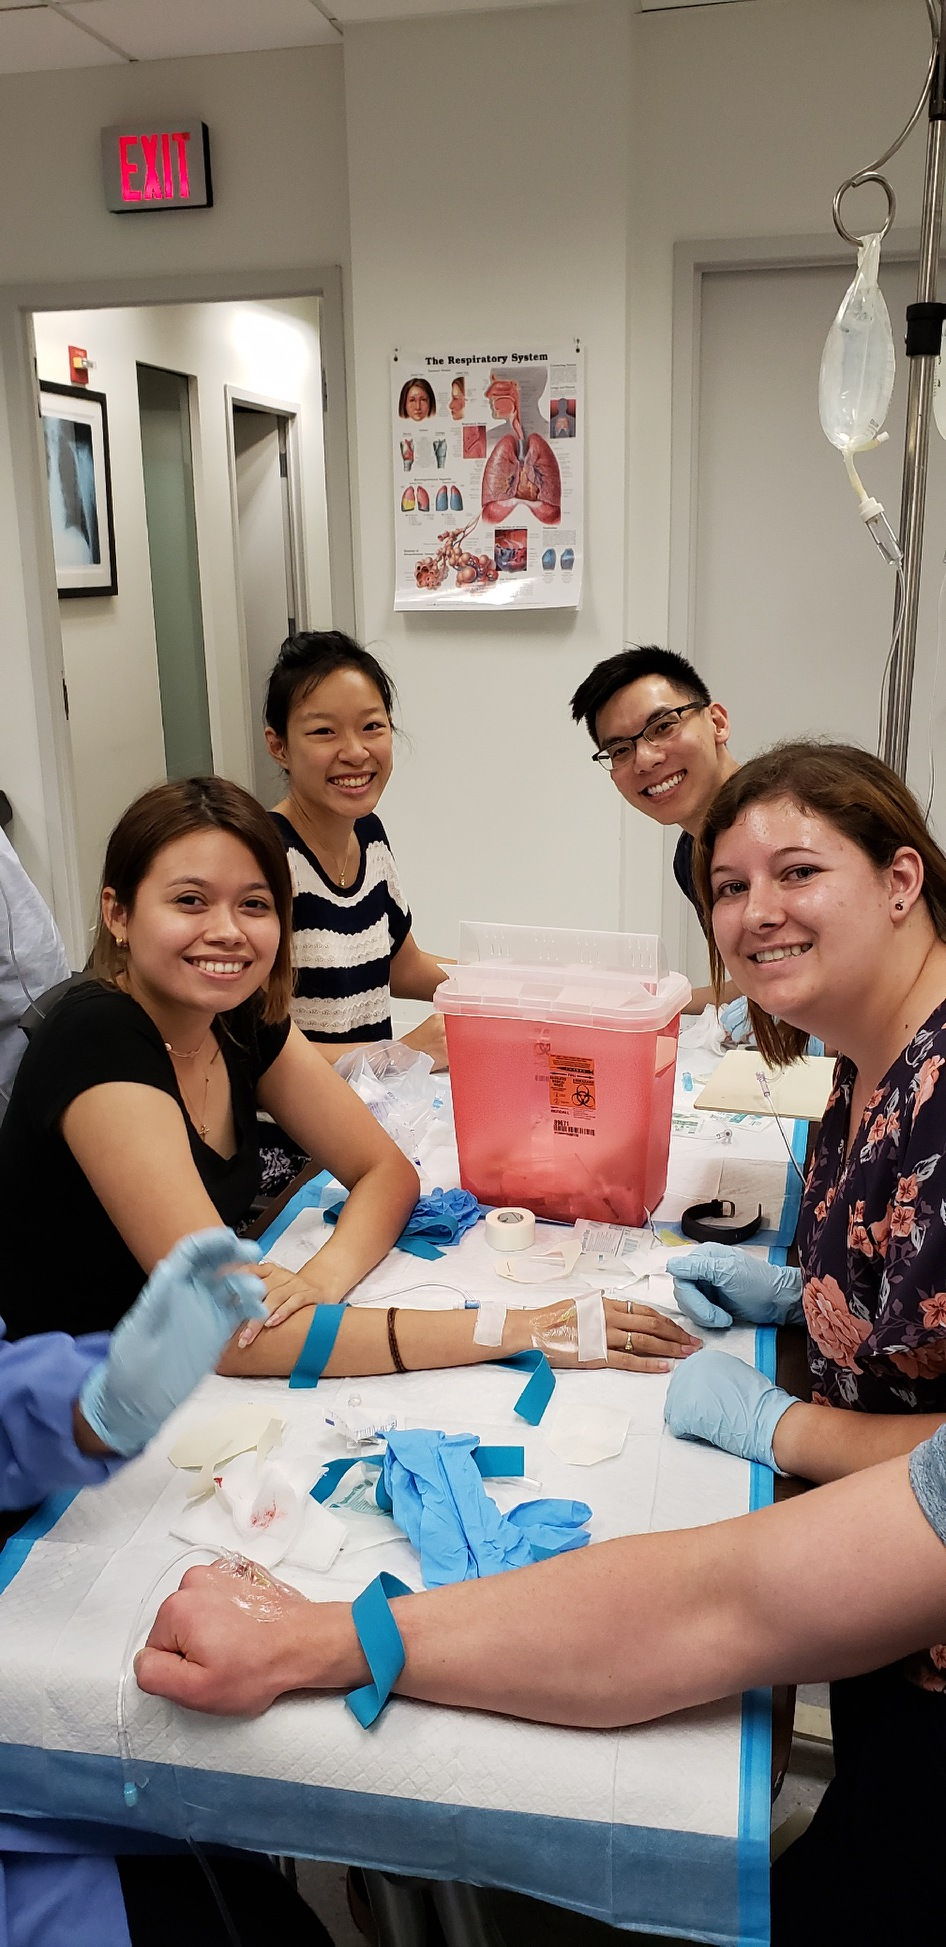 Four CWRU MSA students smiling at the camera during Live IV Day in Washington, DC